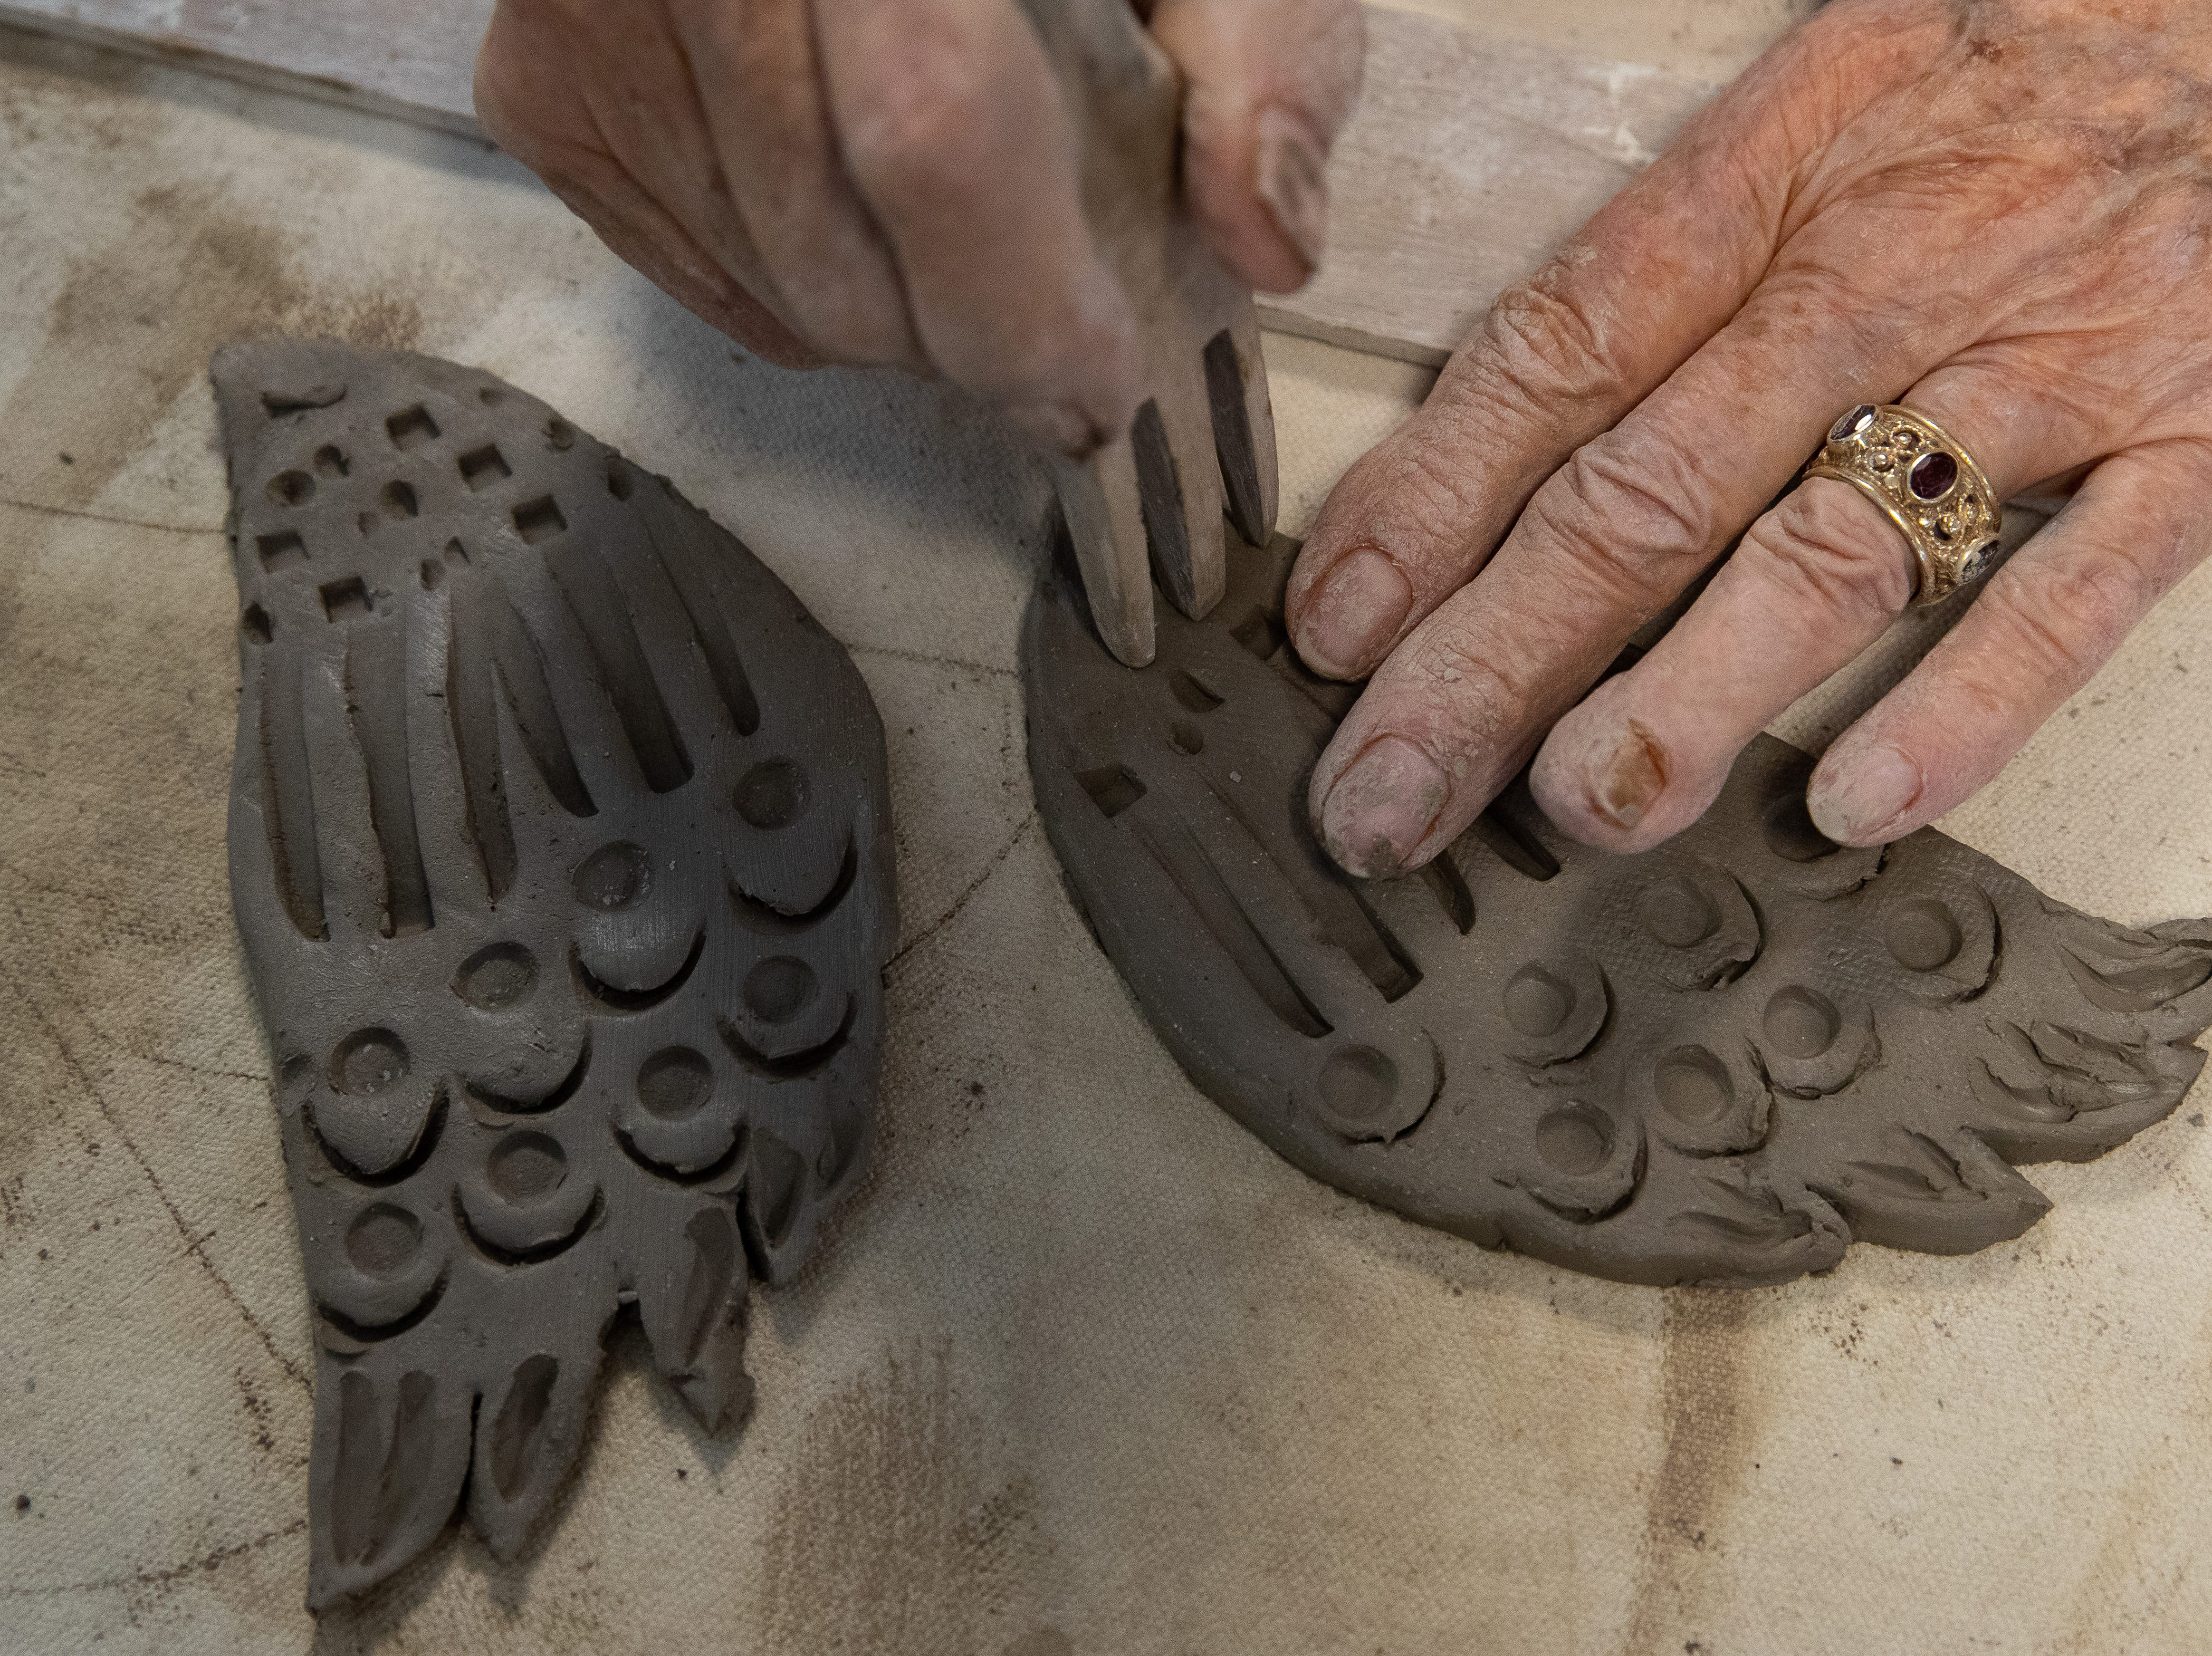 Betty Shamel works with clay at the Wind Way Gallery at 203 South Austin Street in Rockport.